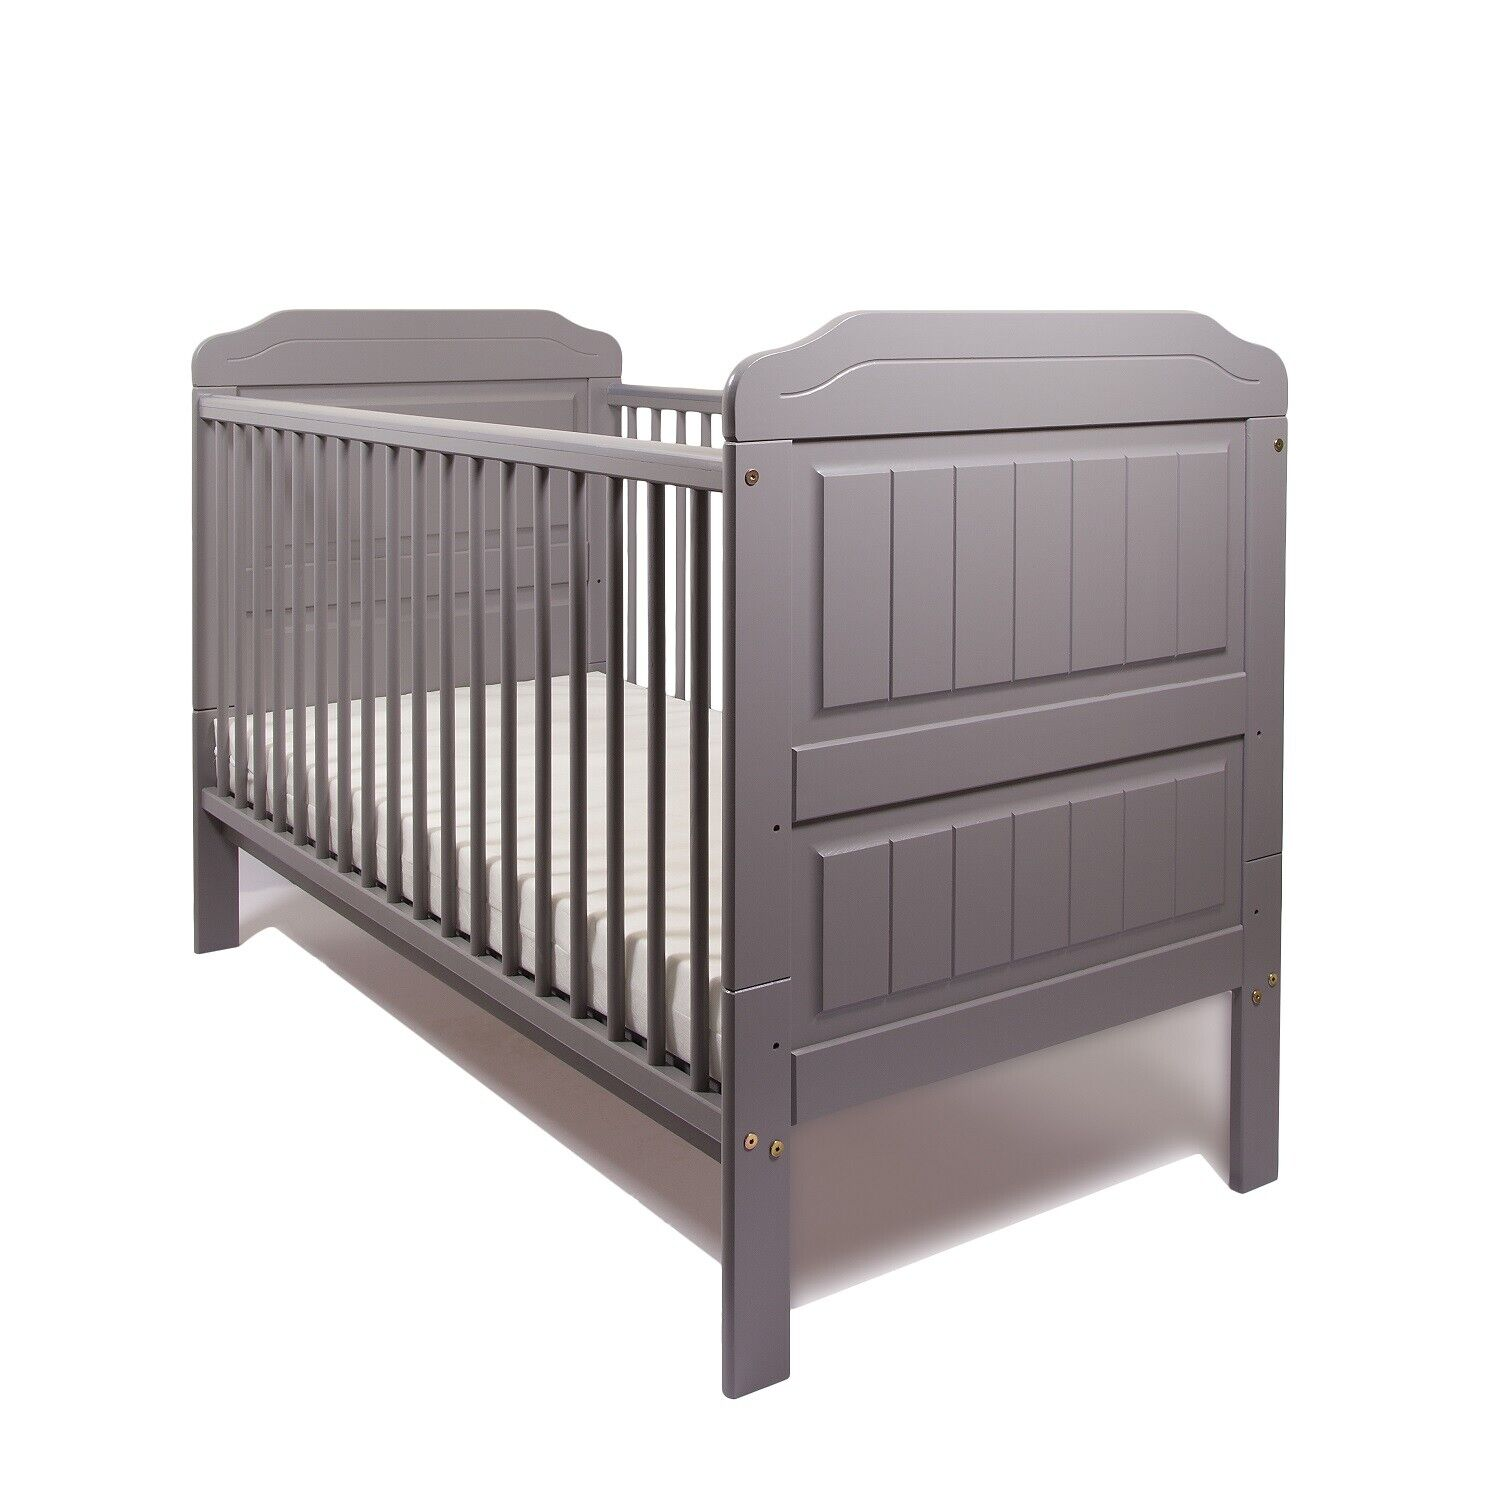 Junior Cot Bed Spring Mattress Obaby Quilted Water Resistant Washable Toddler